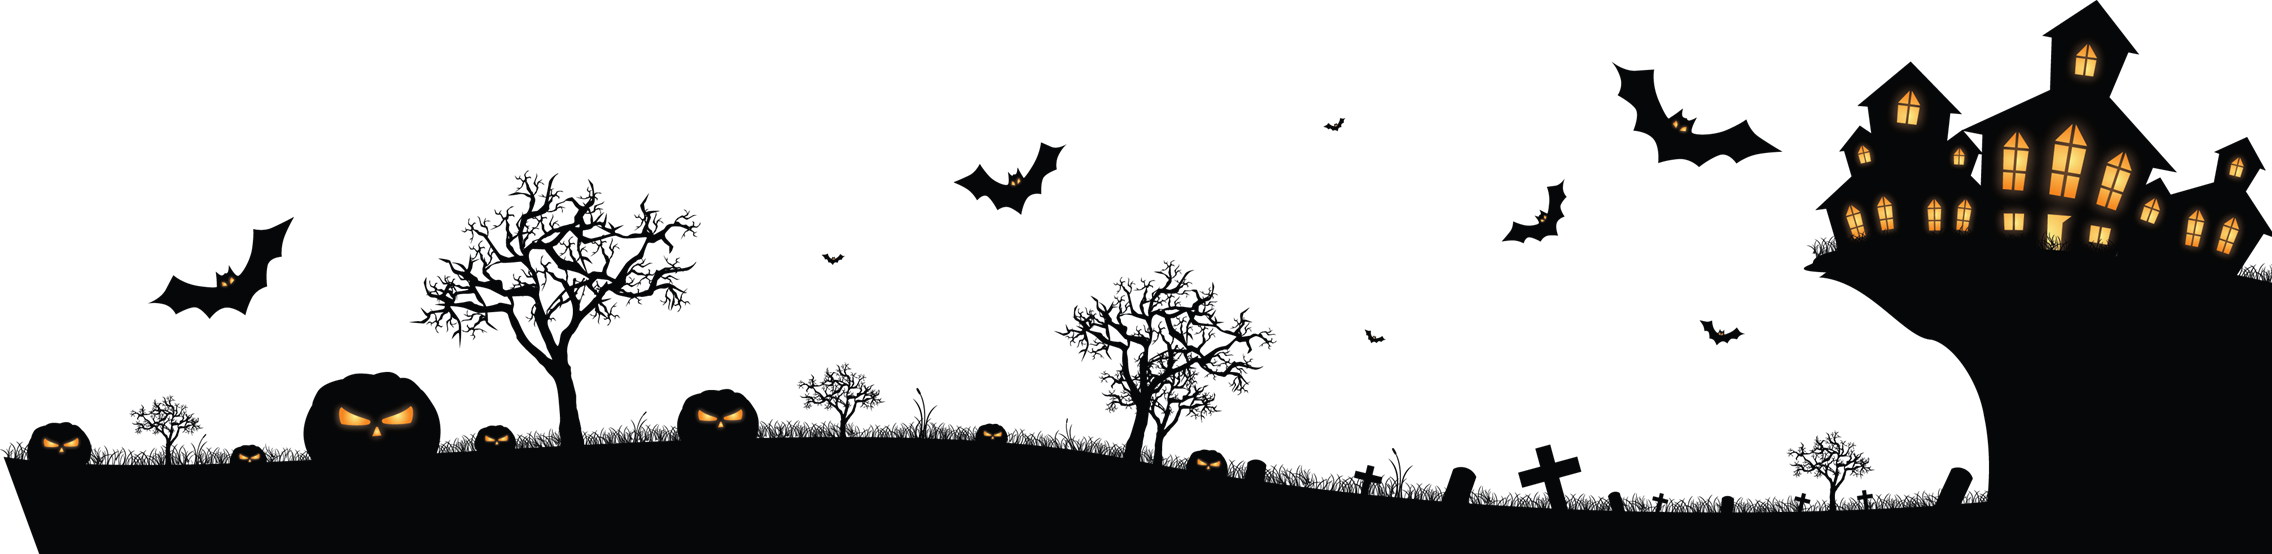 Halloween png images. Backgrounds pictures group index